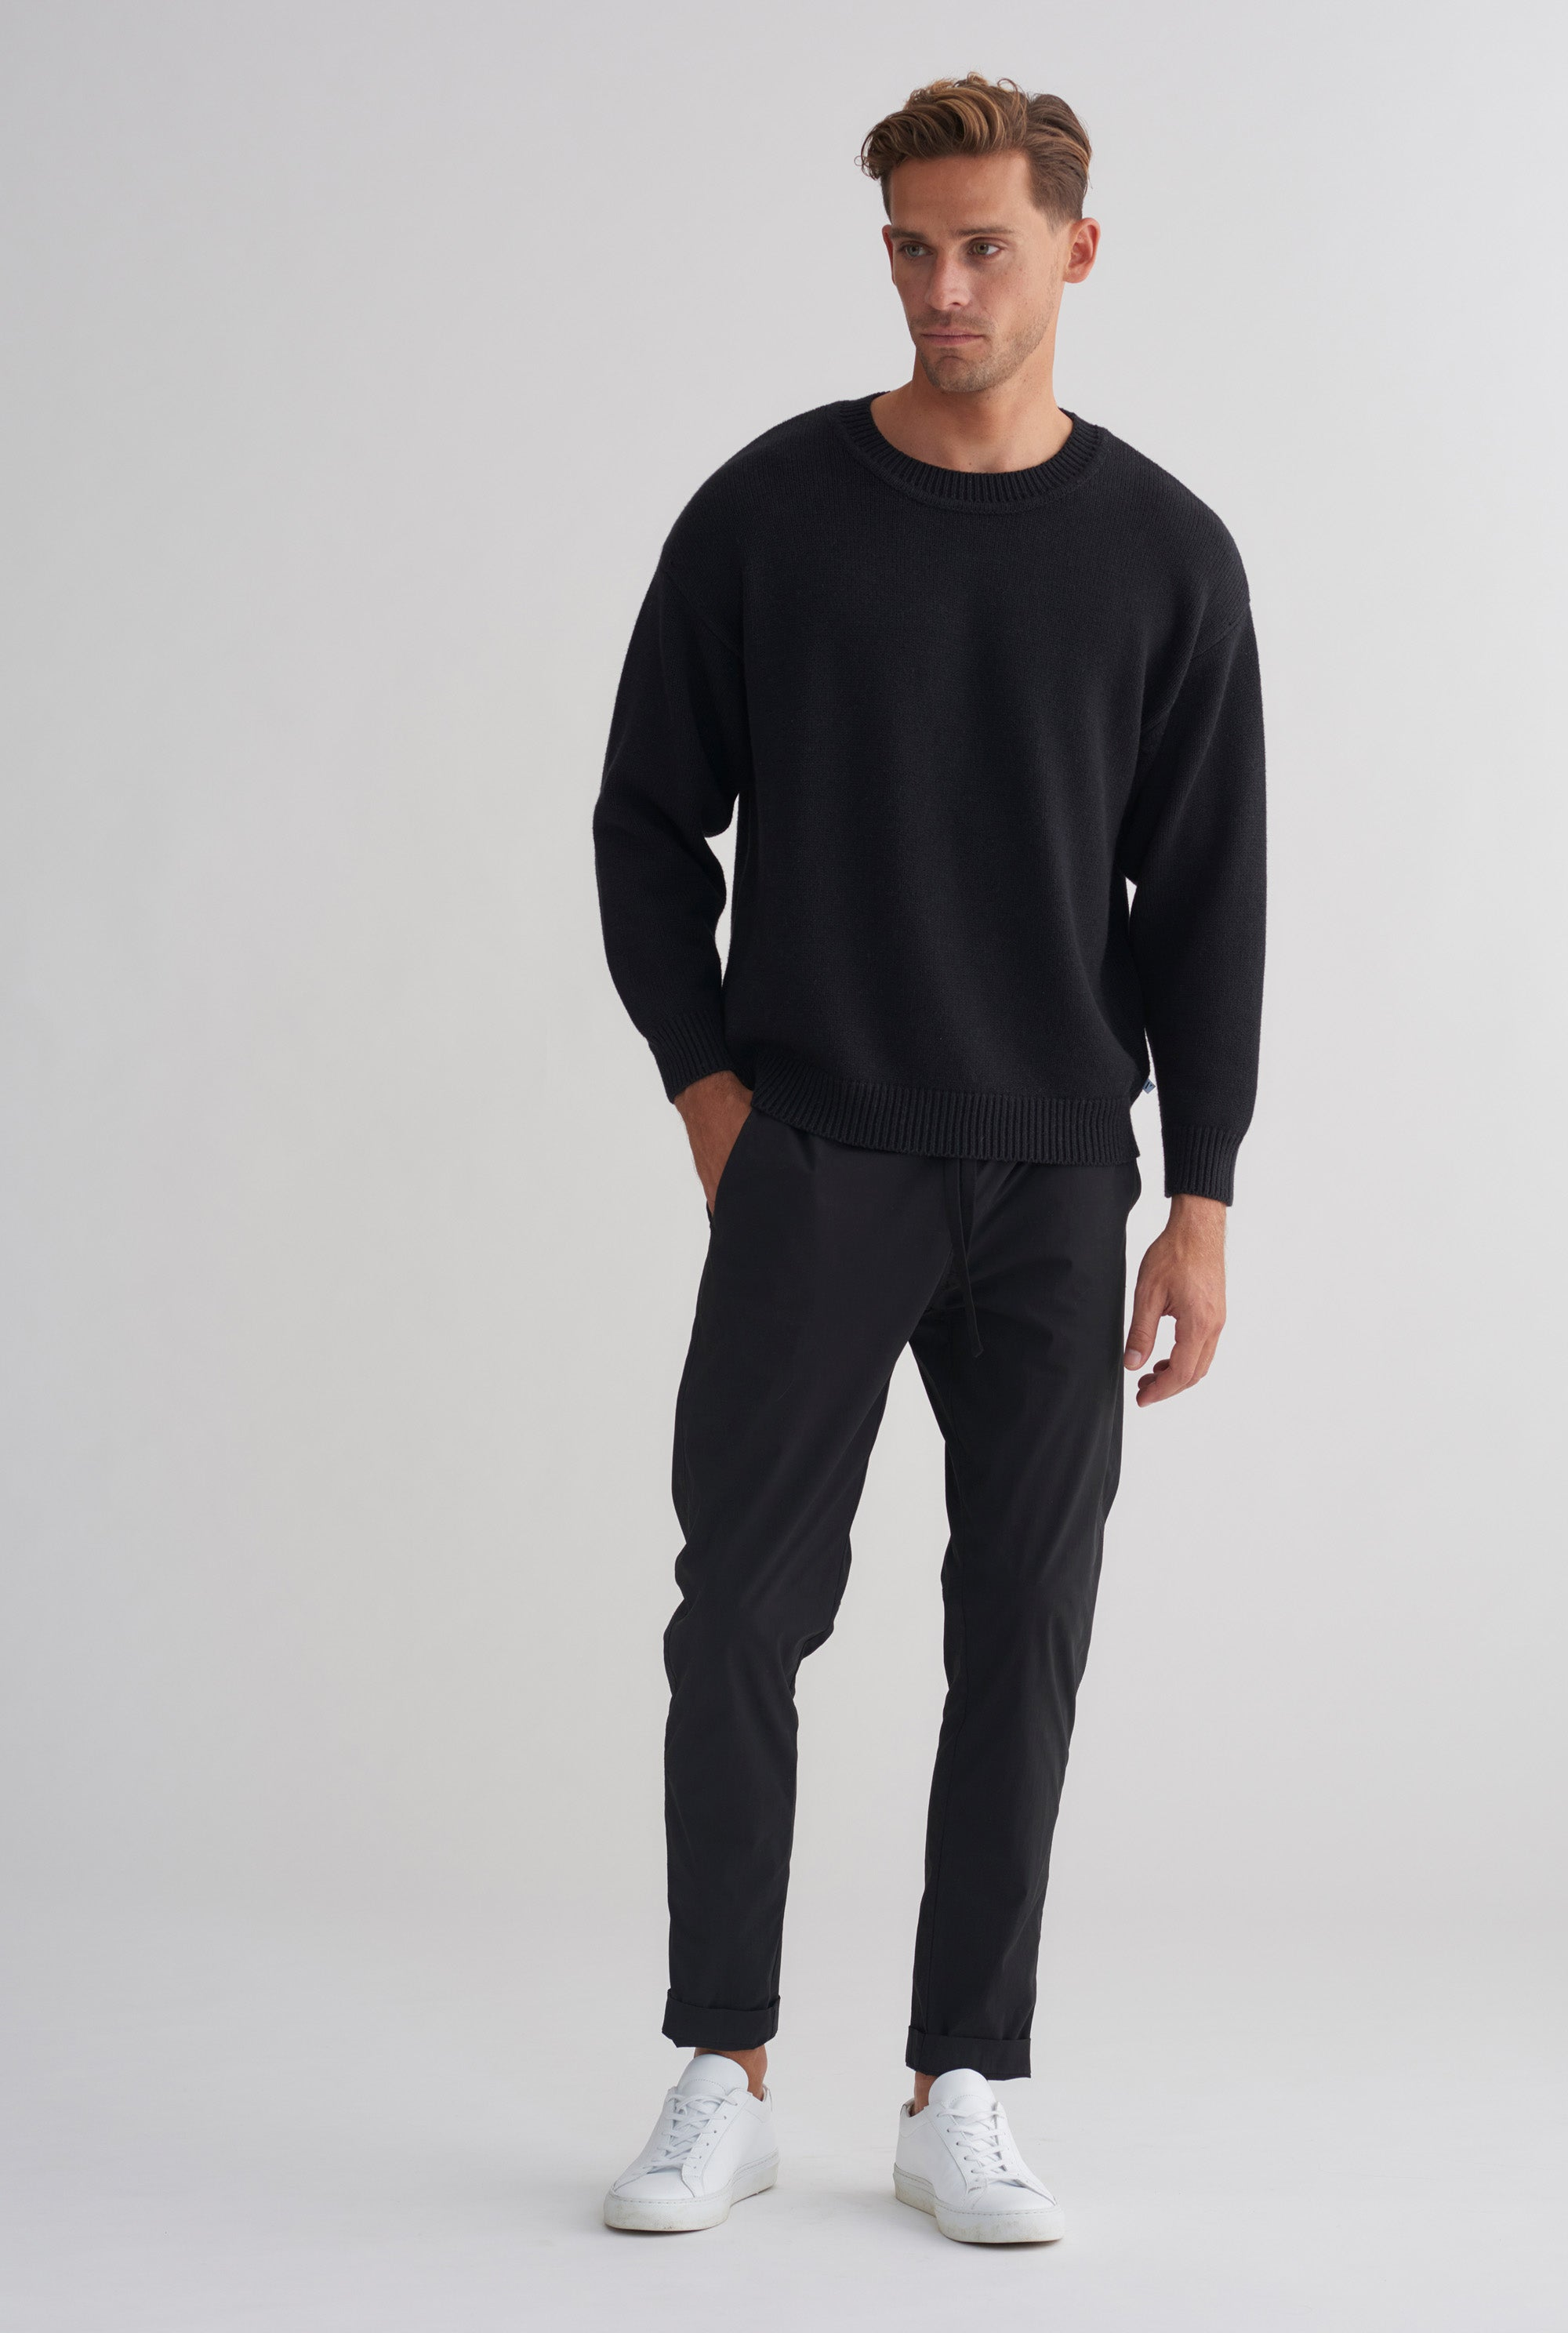 Drop Shoulder Sweater - Dark Charcoal